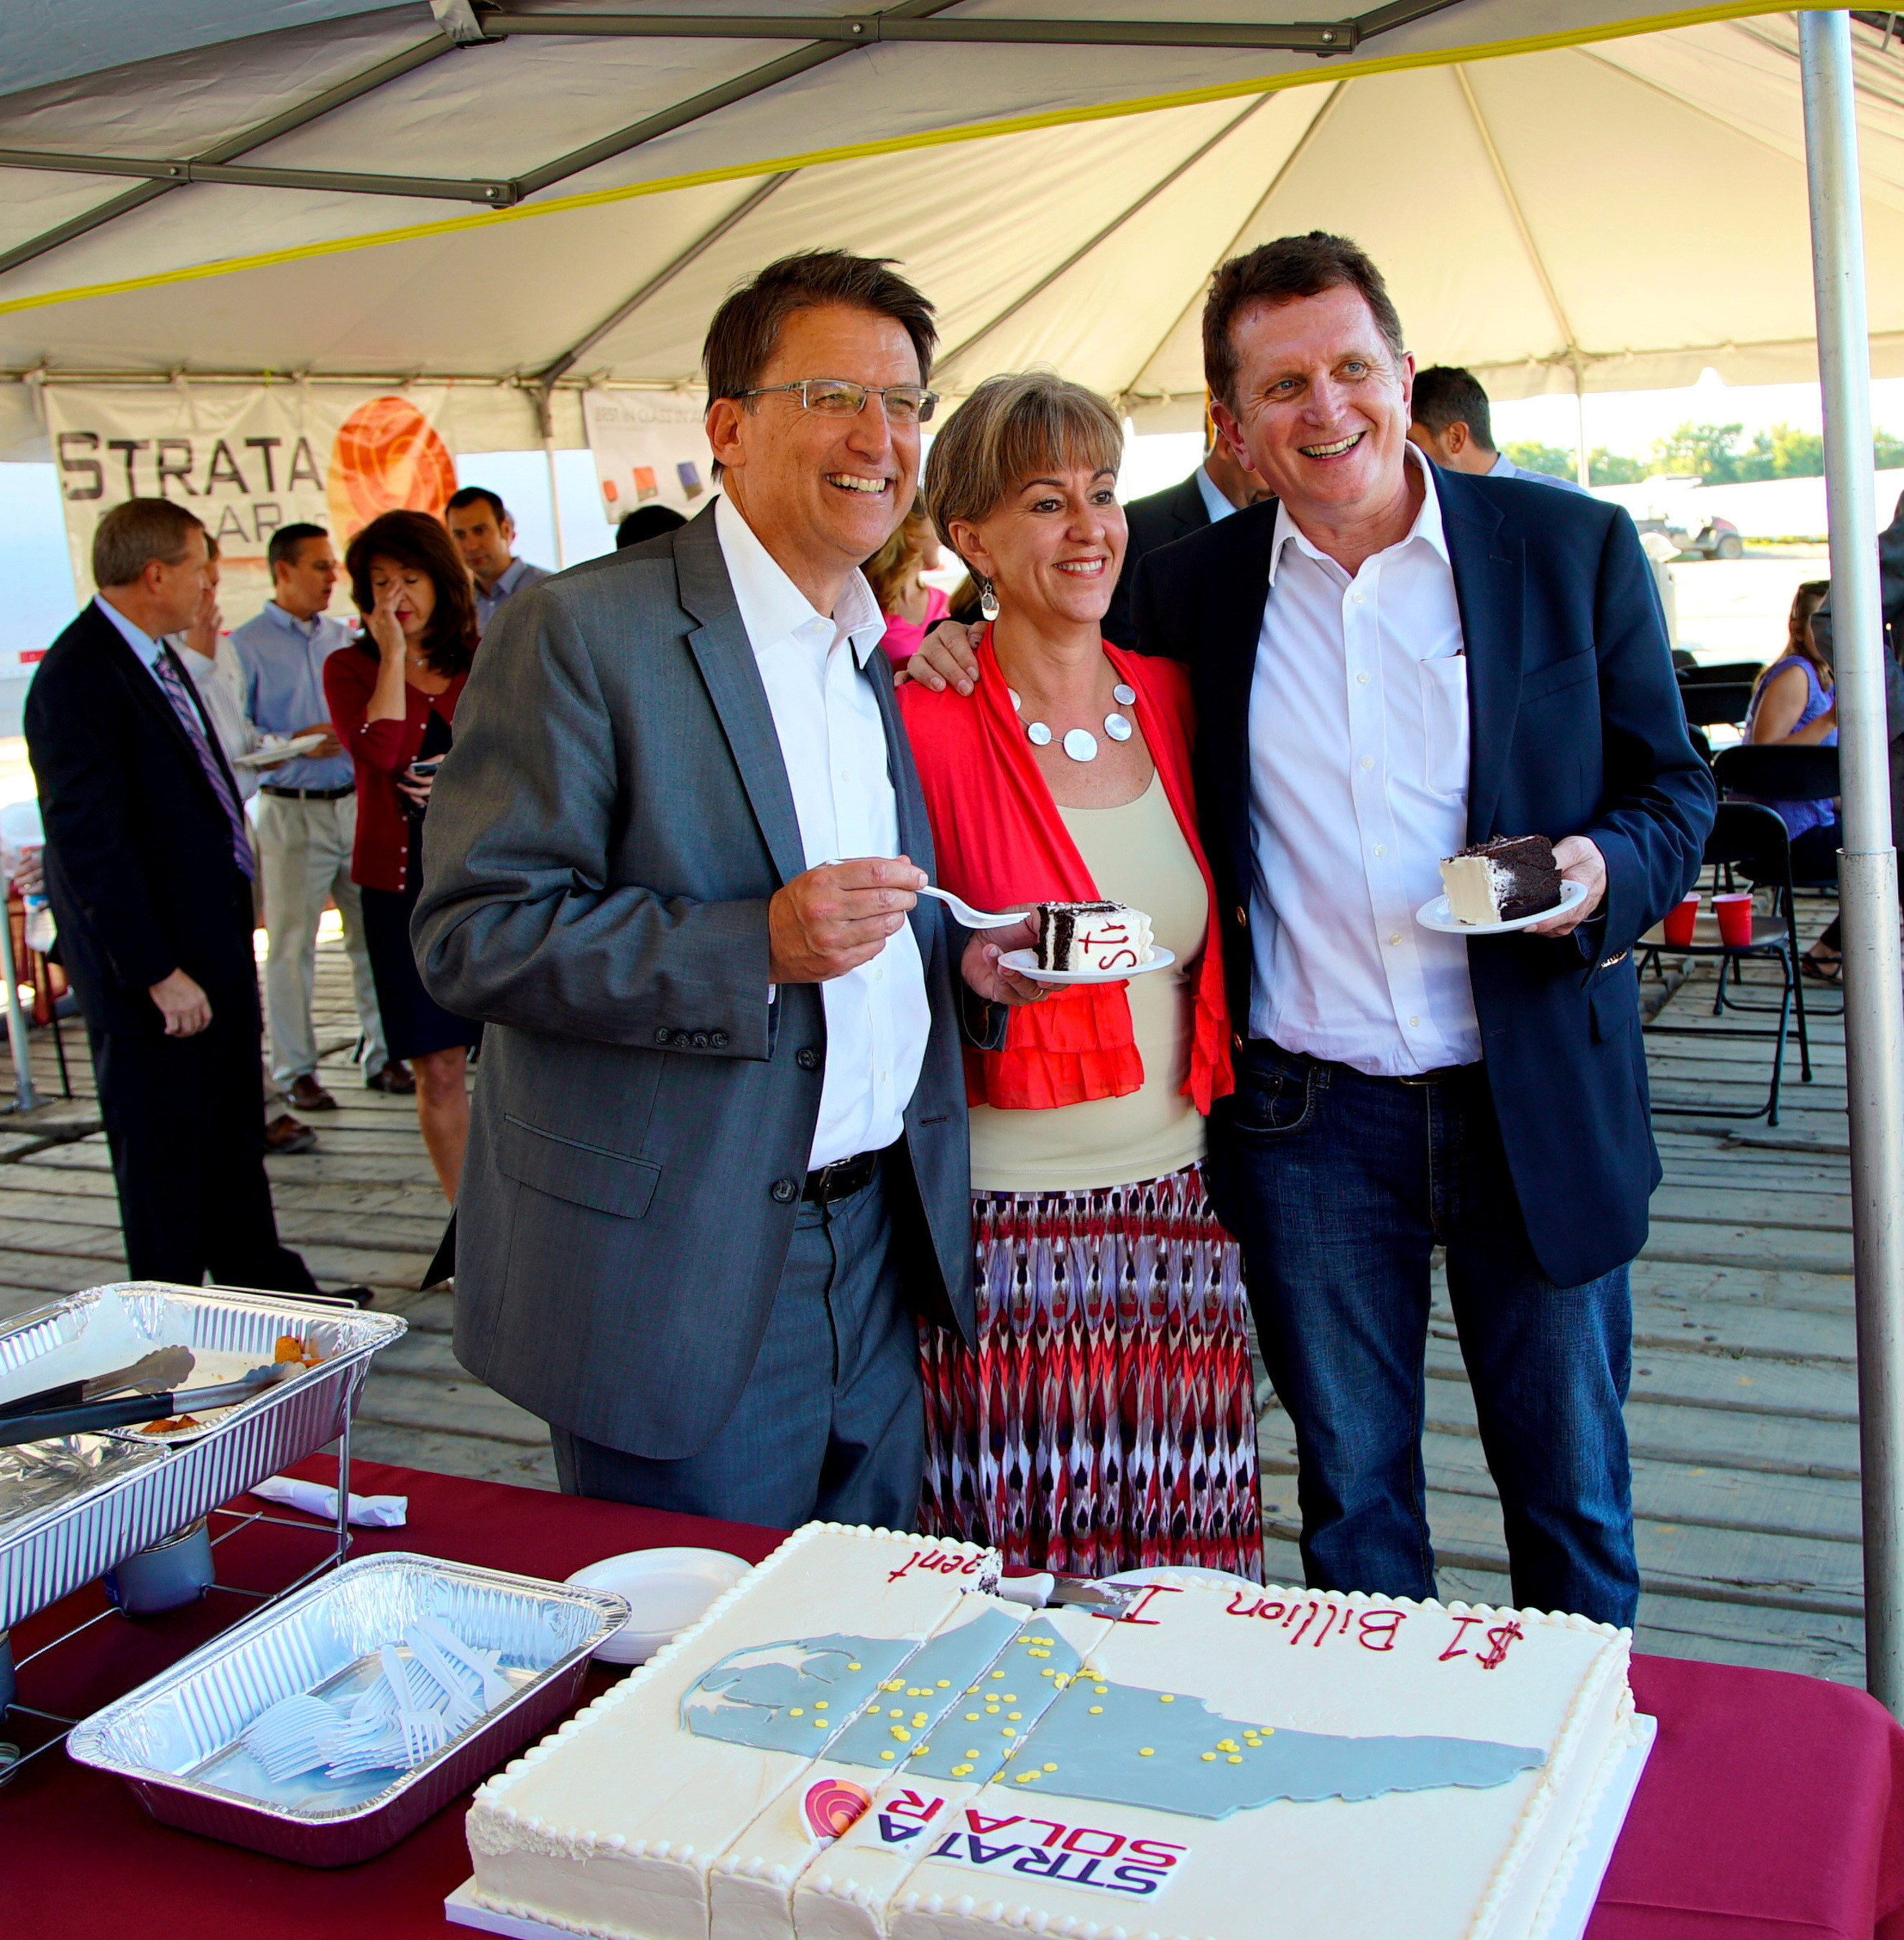 Governor Pat McCrory with Cathy Wilhelm, Strata Solar CAO and Markus Wilhelm, Strata Solar CEO